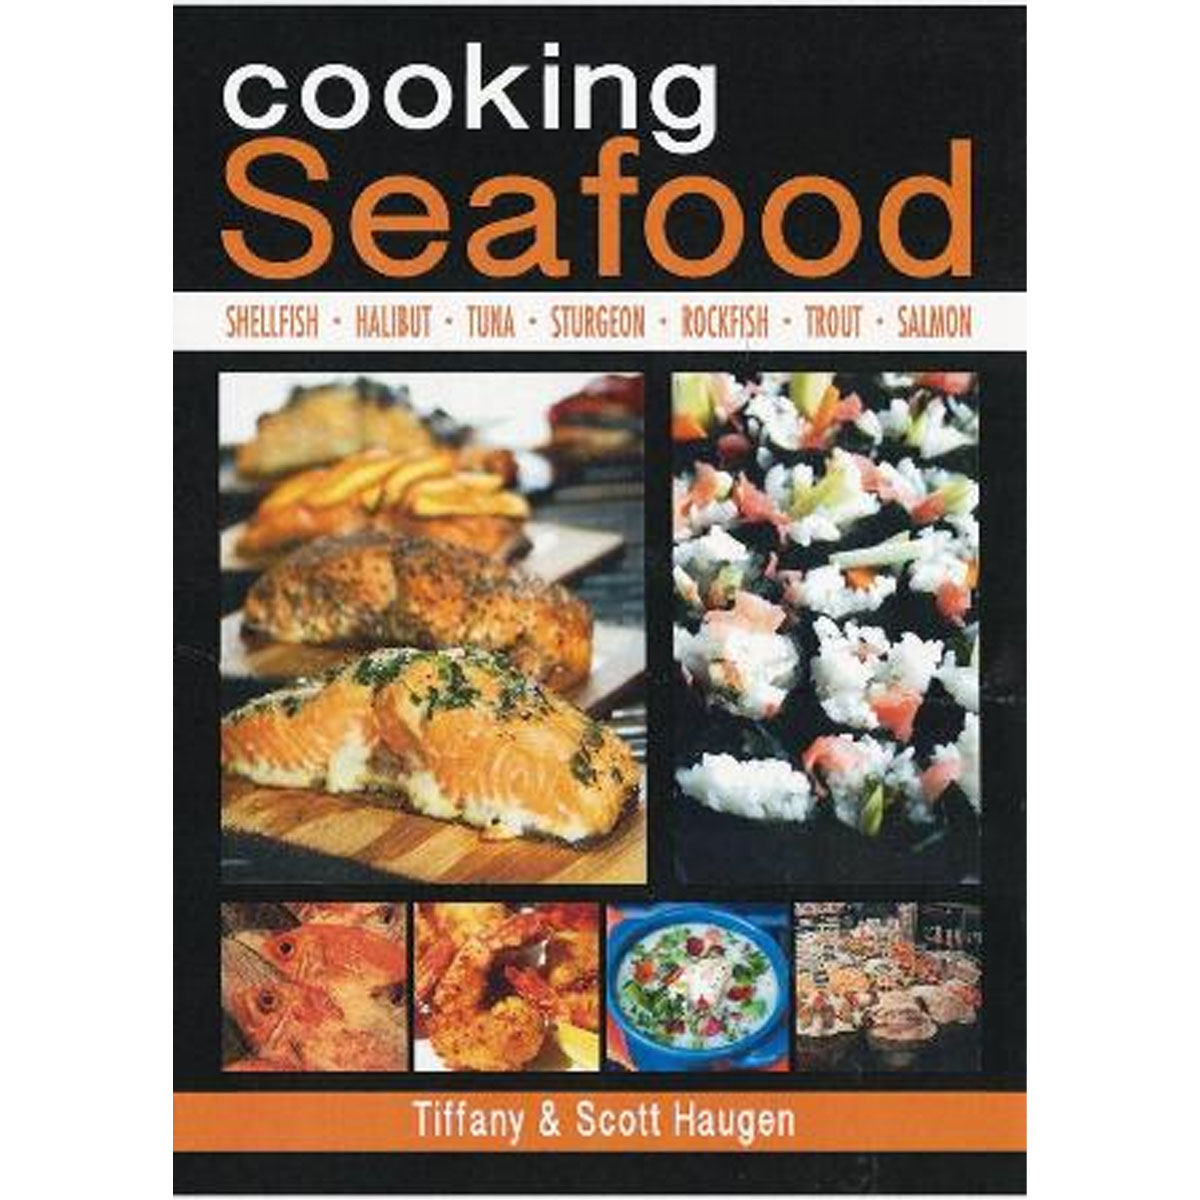 Frank Amato Publications Cooking Seafood H-BWL1840-6 by Frank Amato Publications